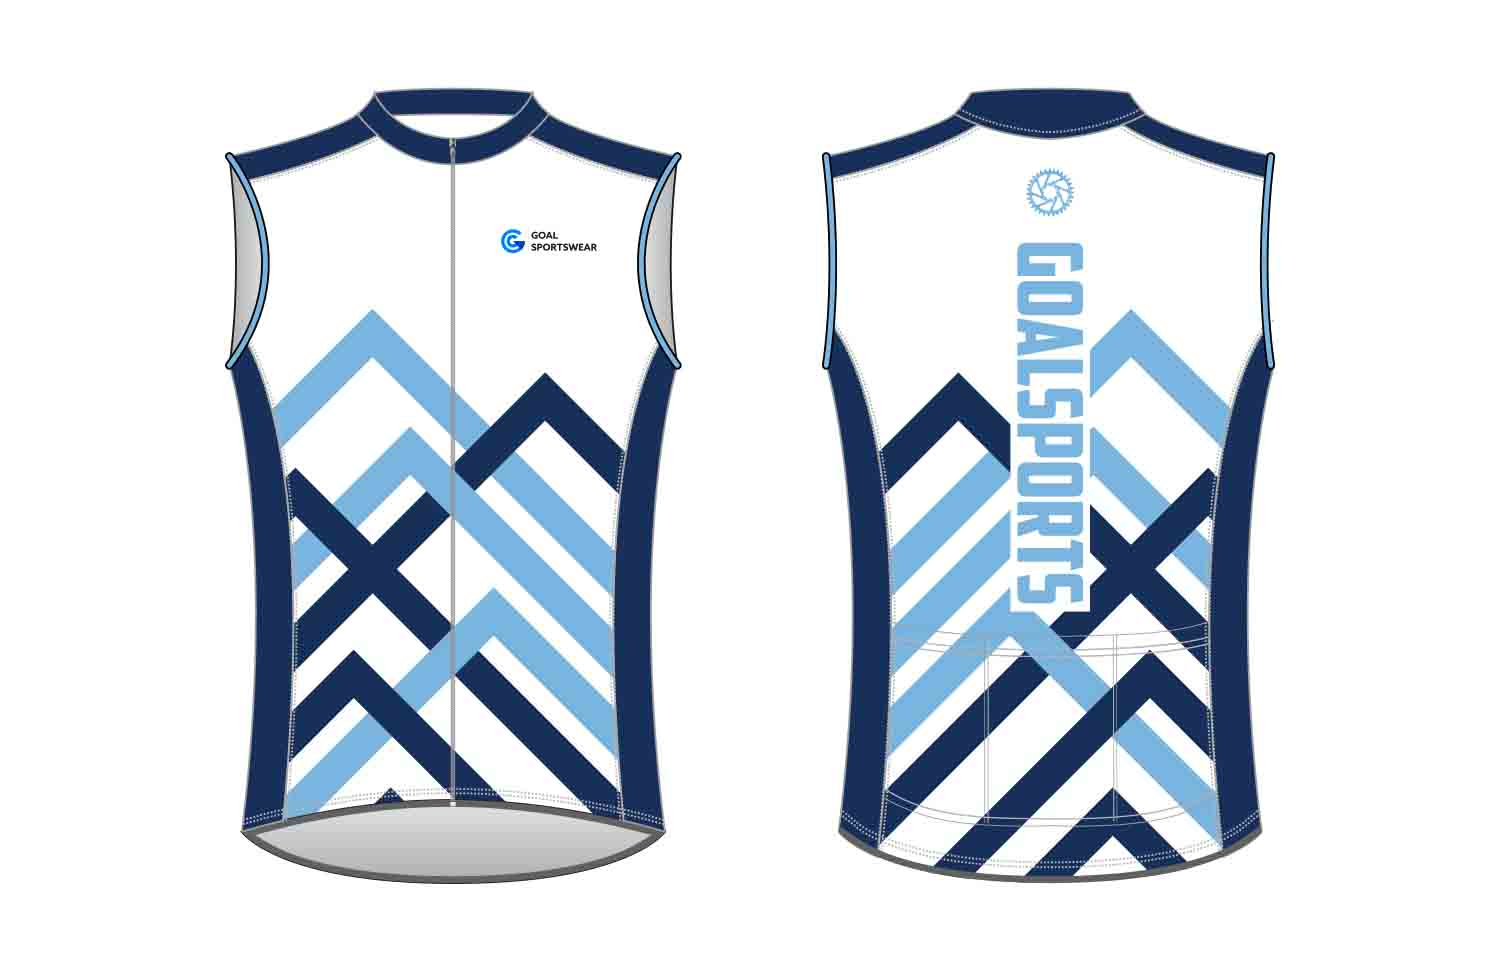 High school custom design sublimated reversible custom Cycling Vest